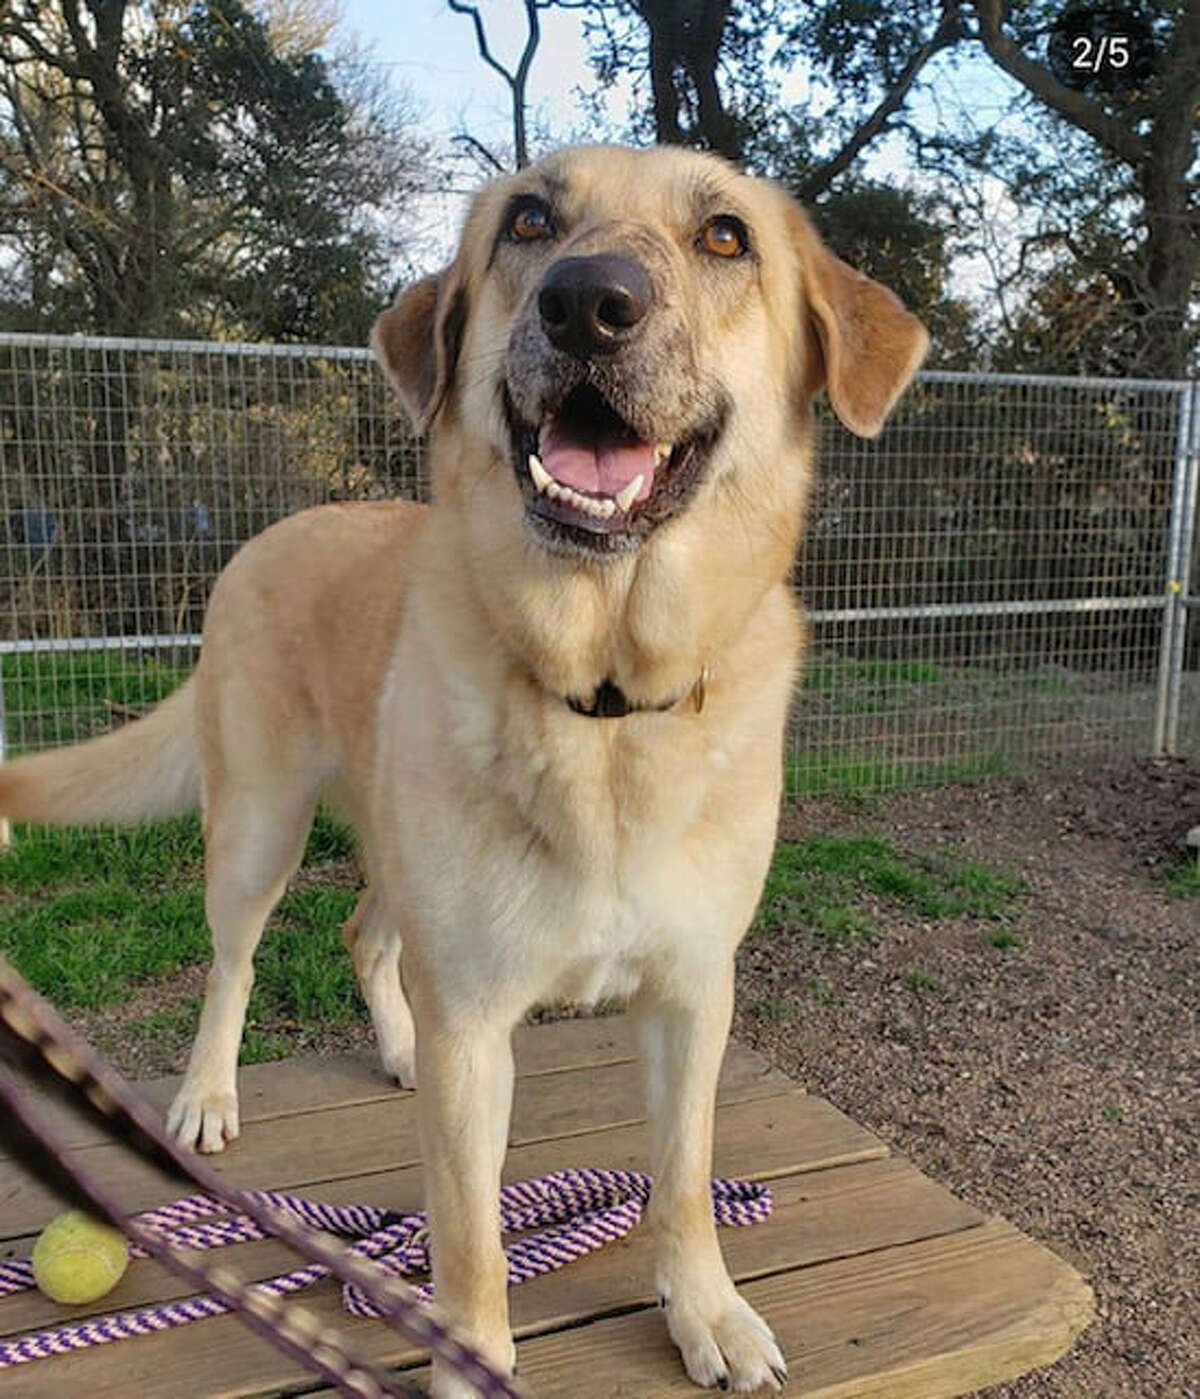 """""""This sweet girl wants what every dog wants, to be in a loving home where she can feel safe and comfortable,"""" the shelter said online. """"Dakota is a beautiful, playful dog with so much love to give."""""""